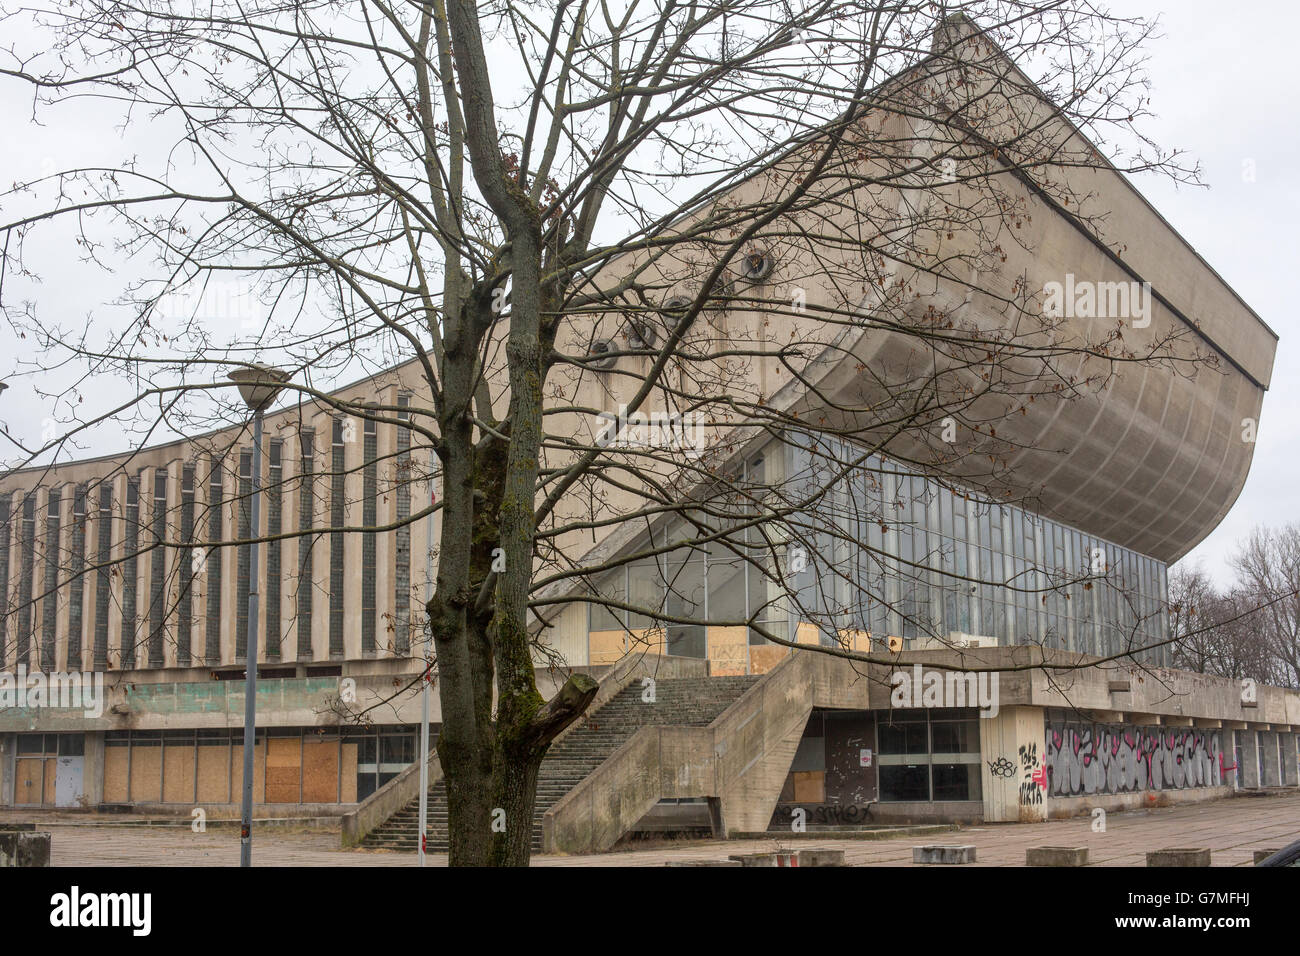 Vilnius Sport complex and Palace of Concerts and Sports, also known as the Sporto Rūmai, Vilnius, Lithuania, Europe, Stock Photo